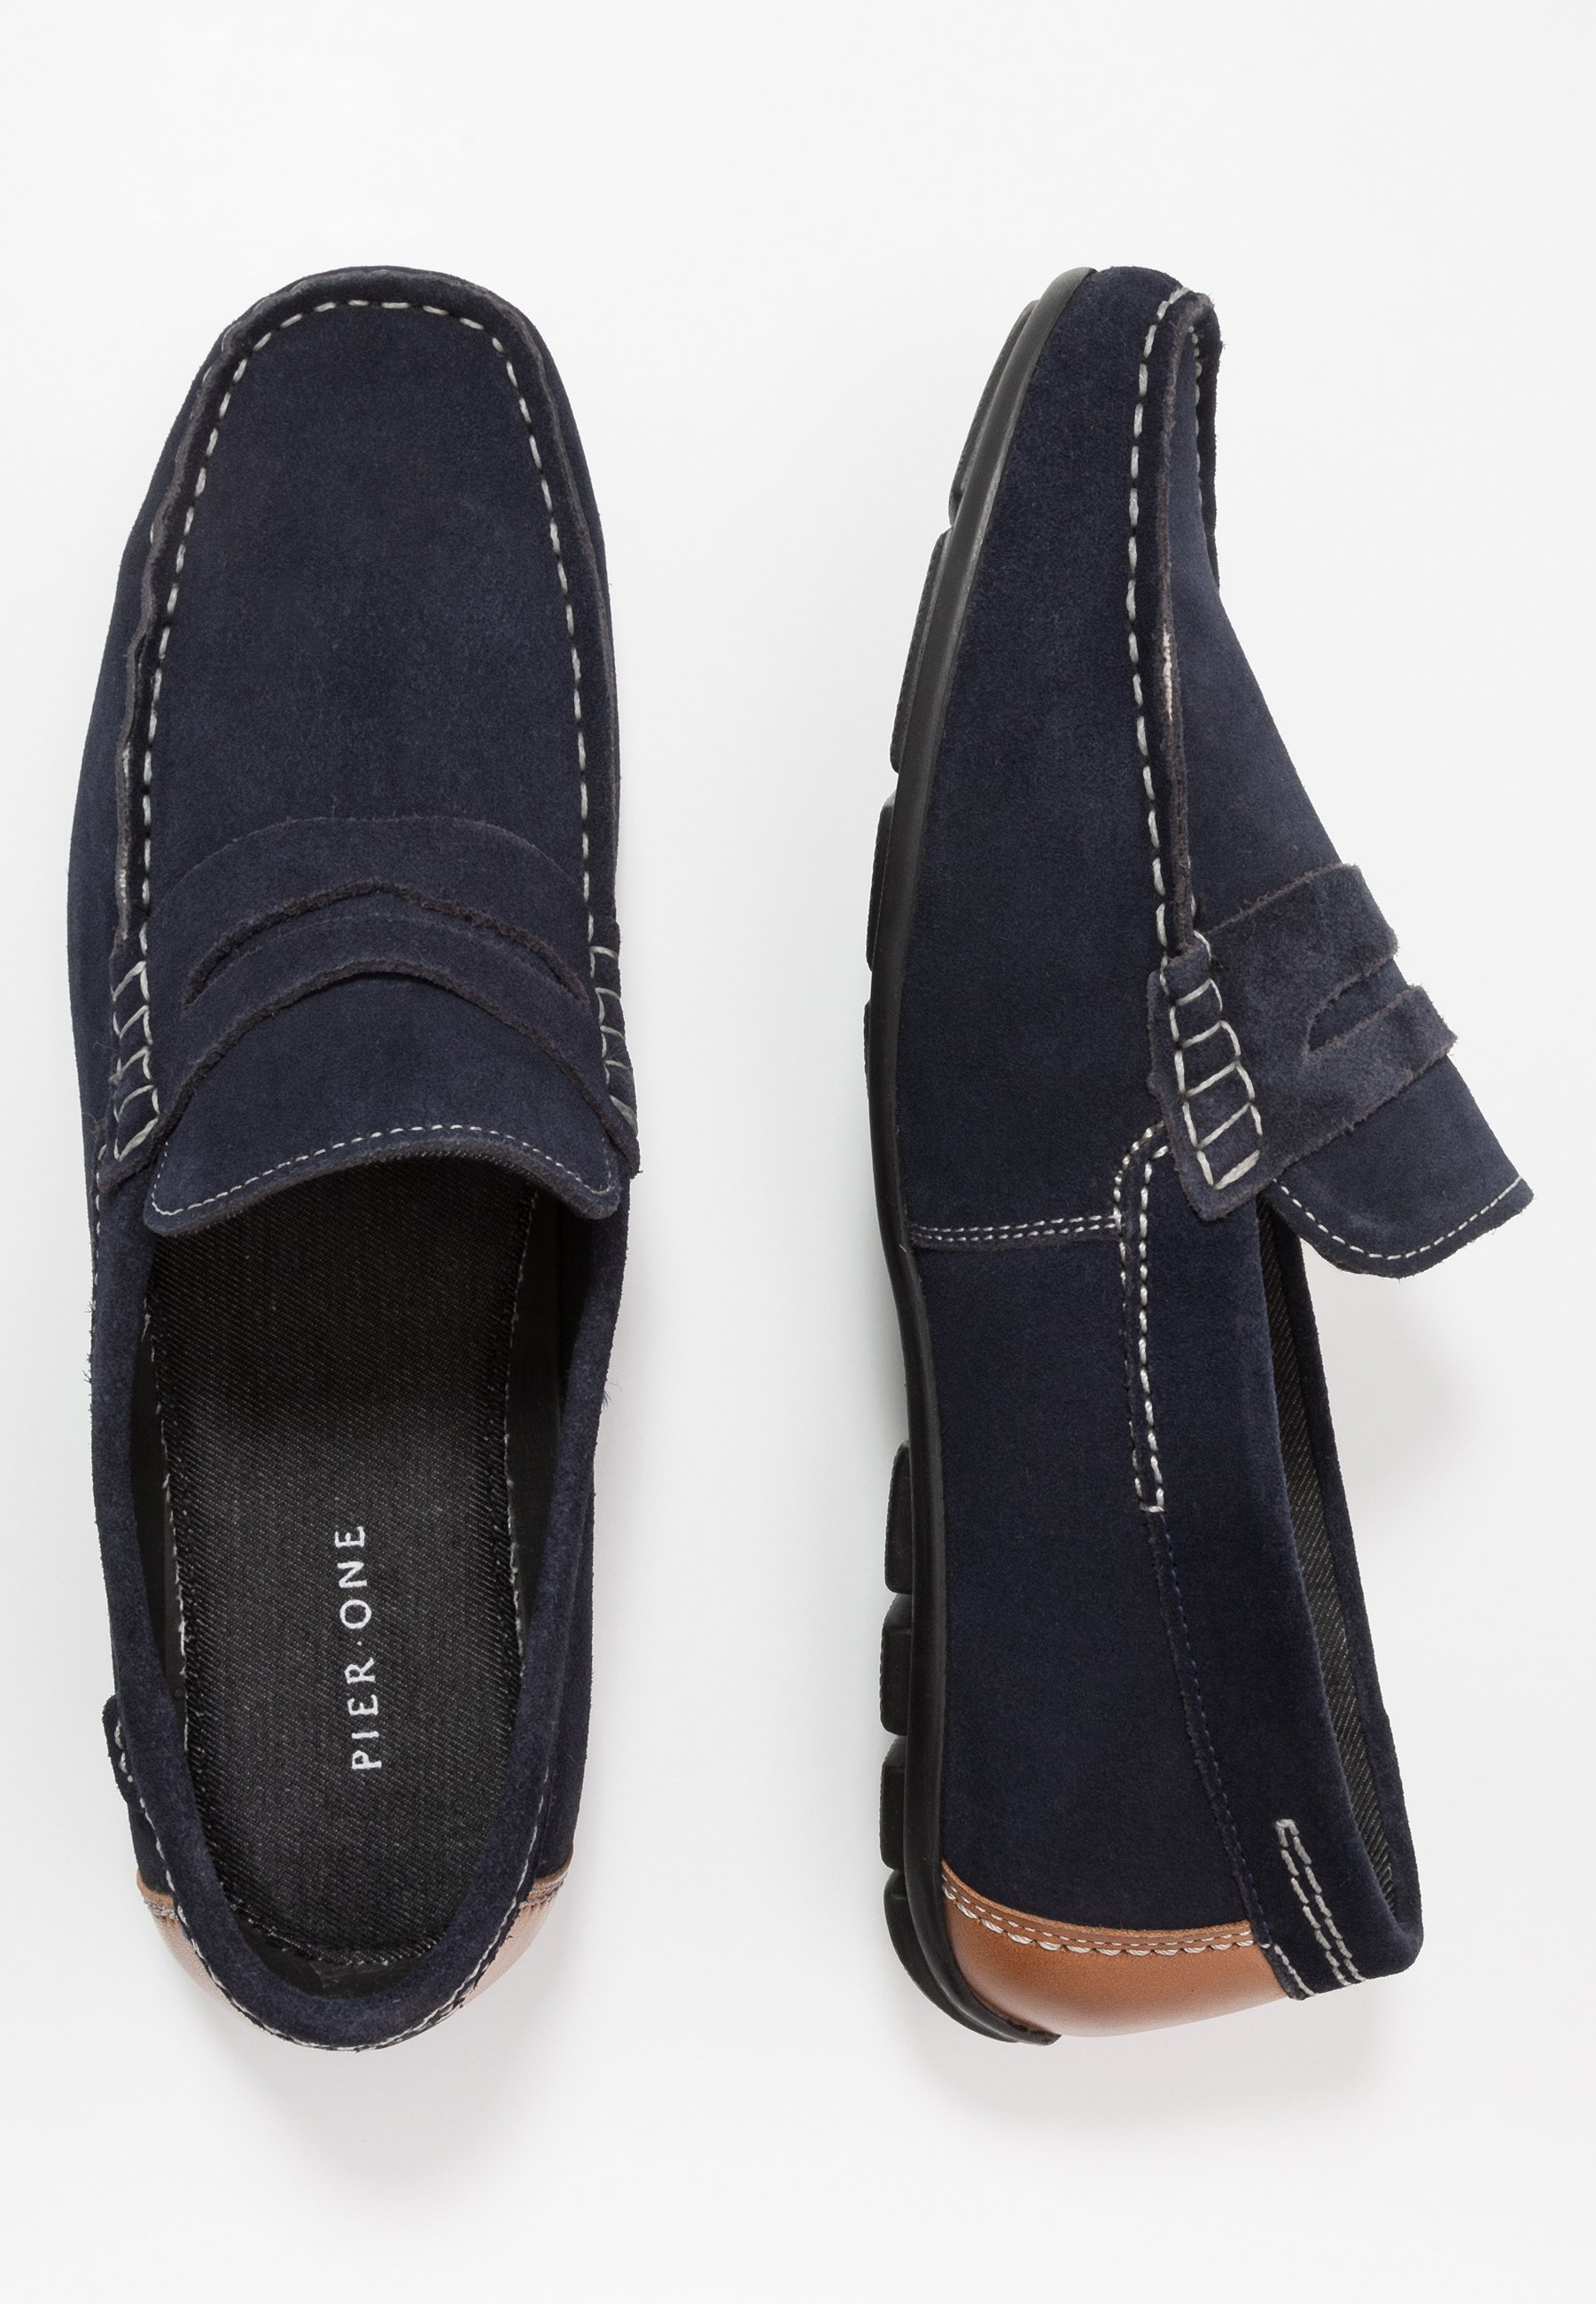 Pier One Mocassins - dark blue